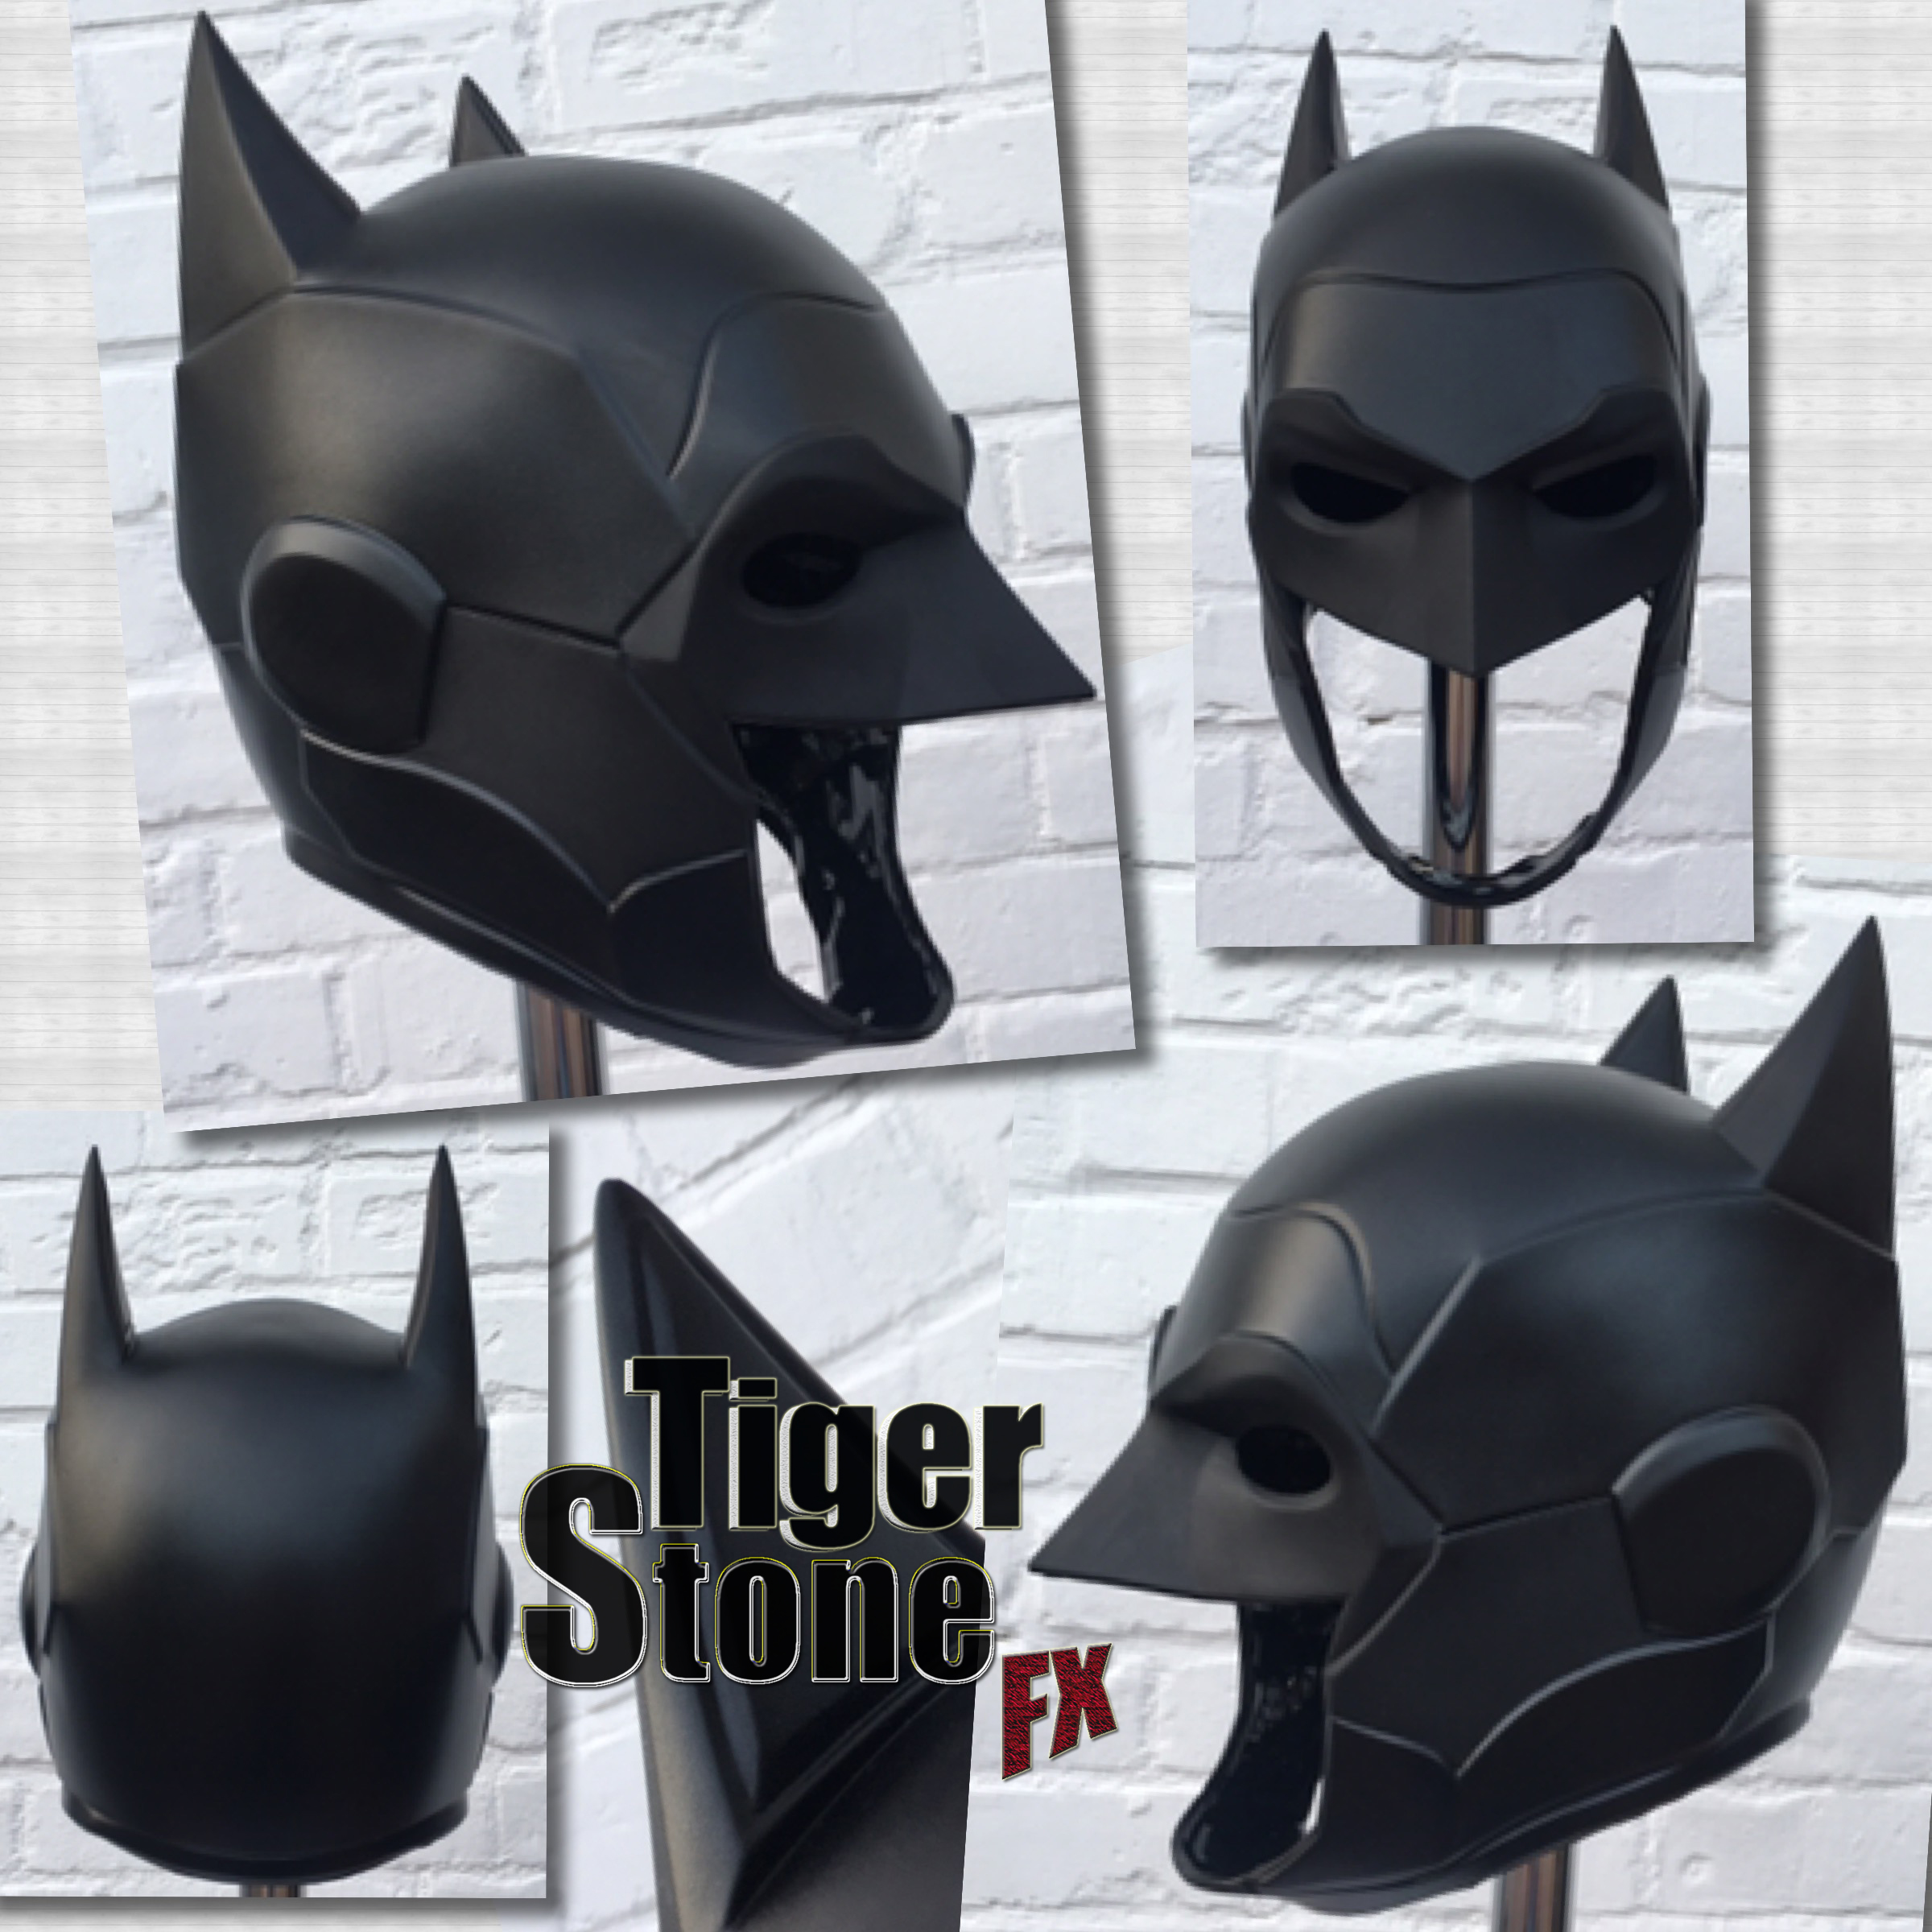 new 52 armored batman inspired cowl head piece by tiger